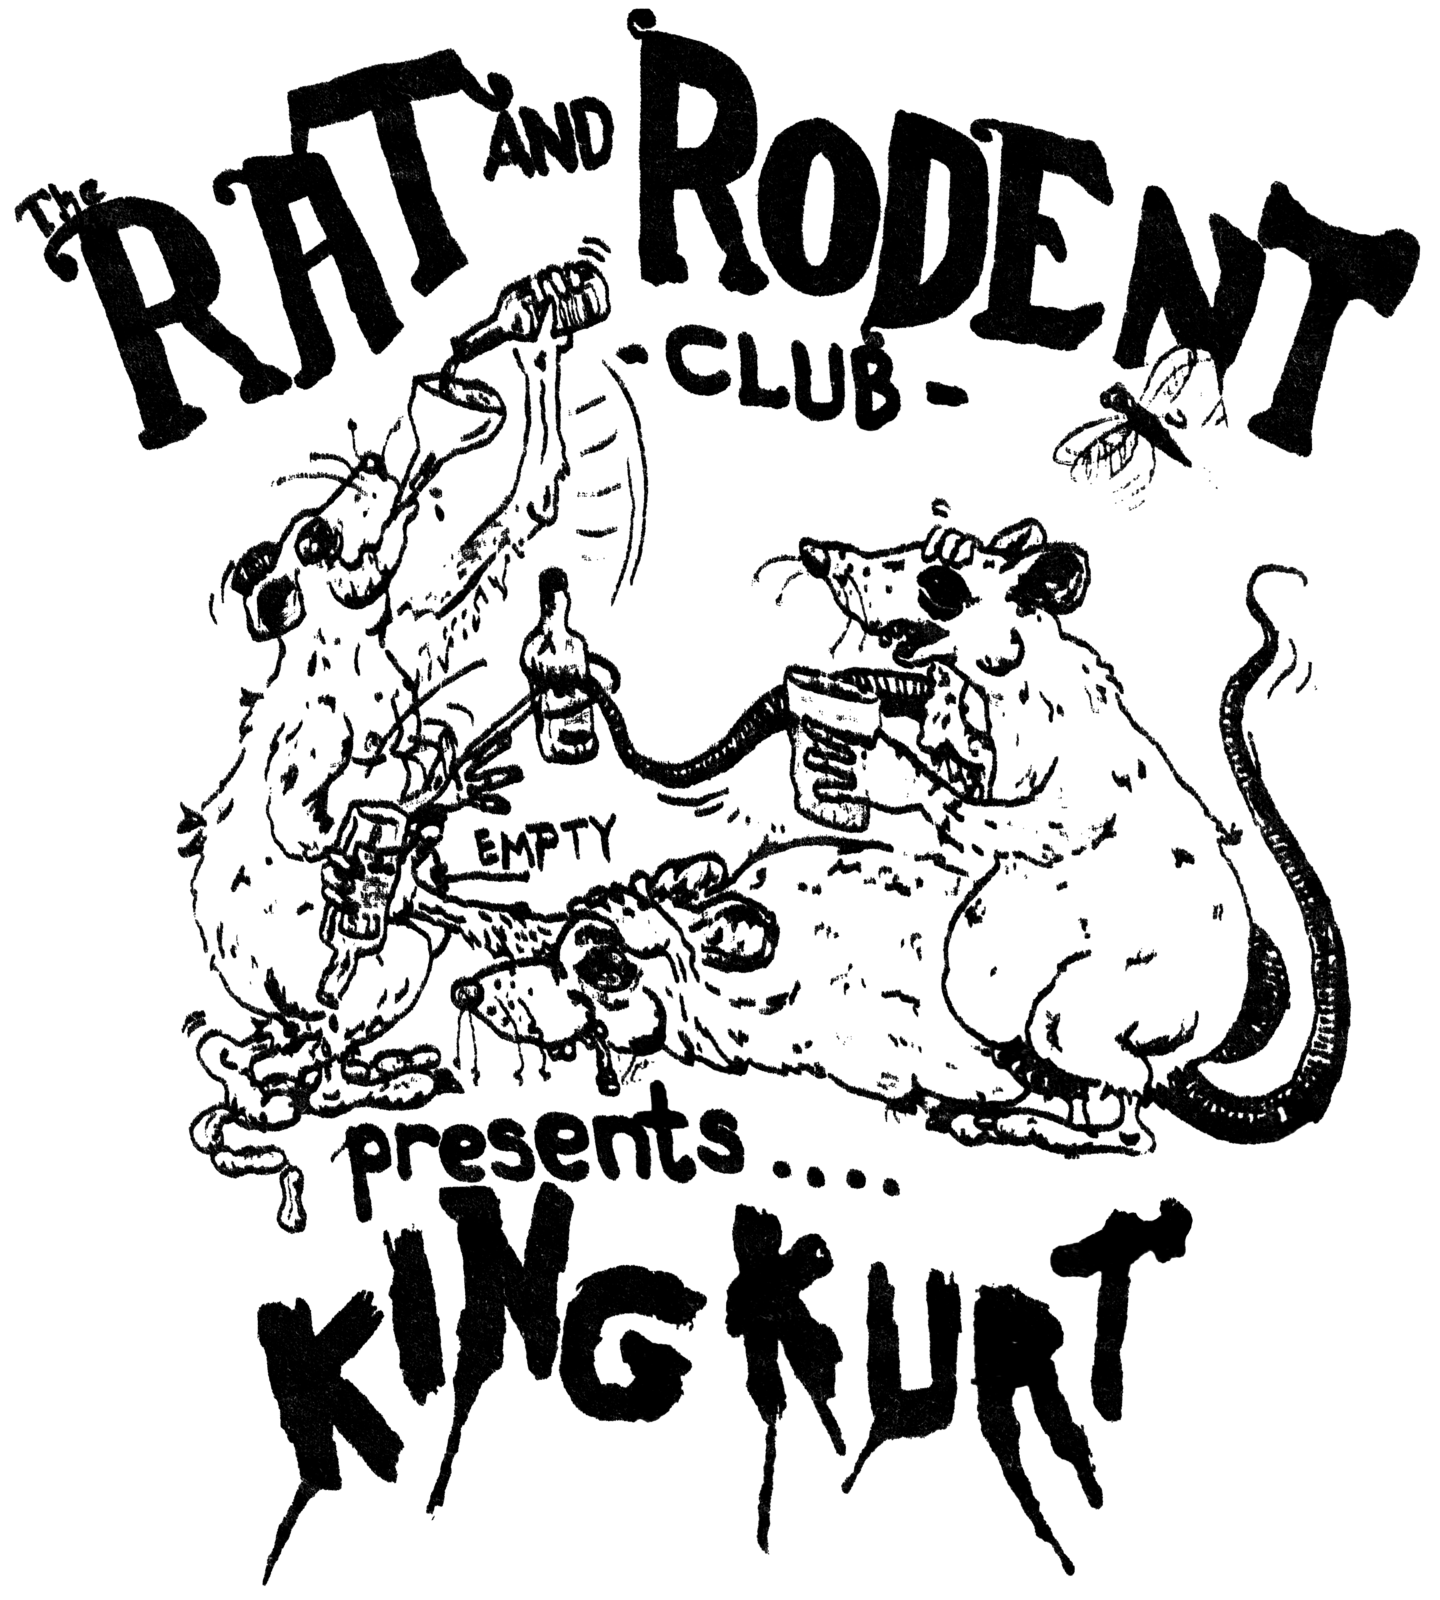 Rat & Rodent Club T-shirt 100% cotton rockabilly cramps psychobilly king kurt